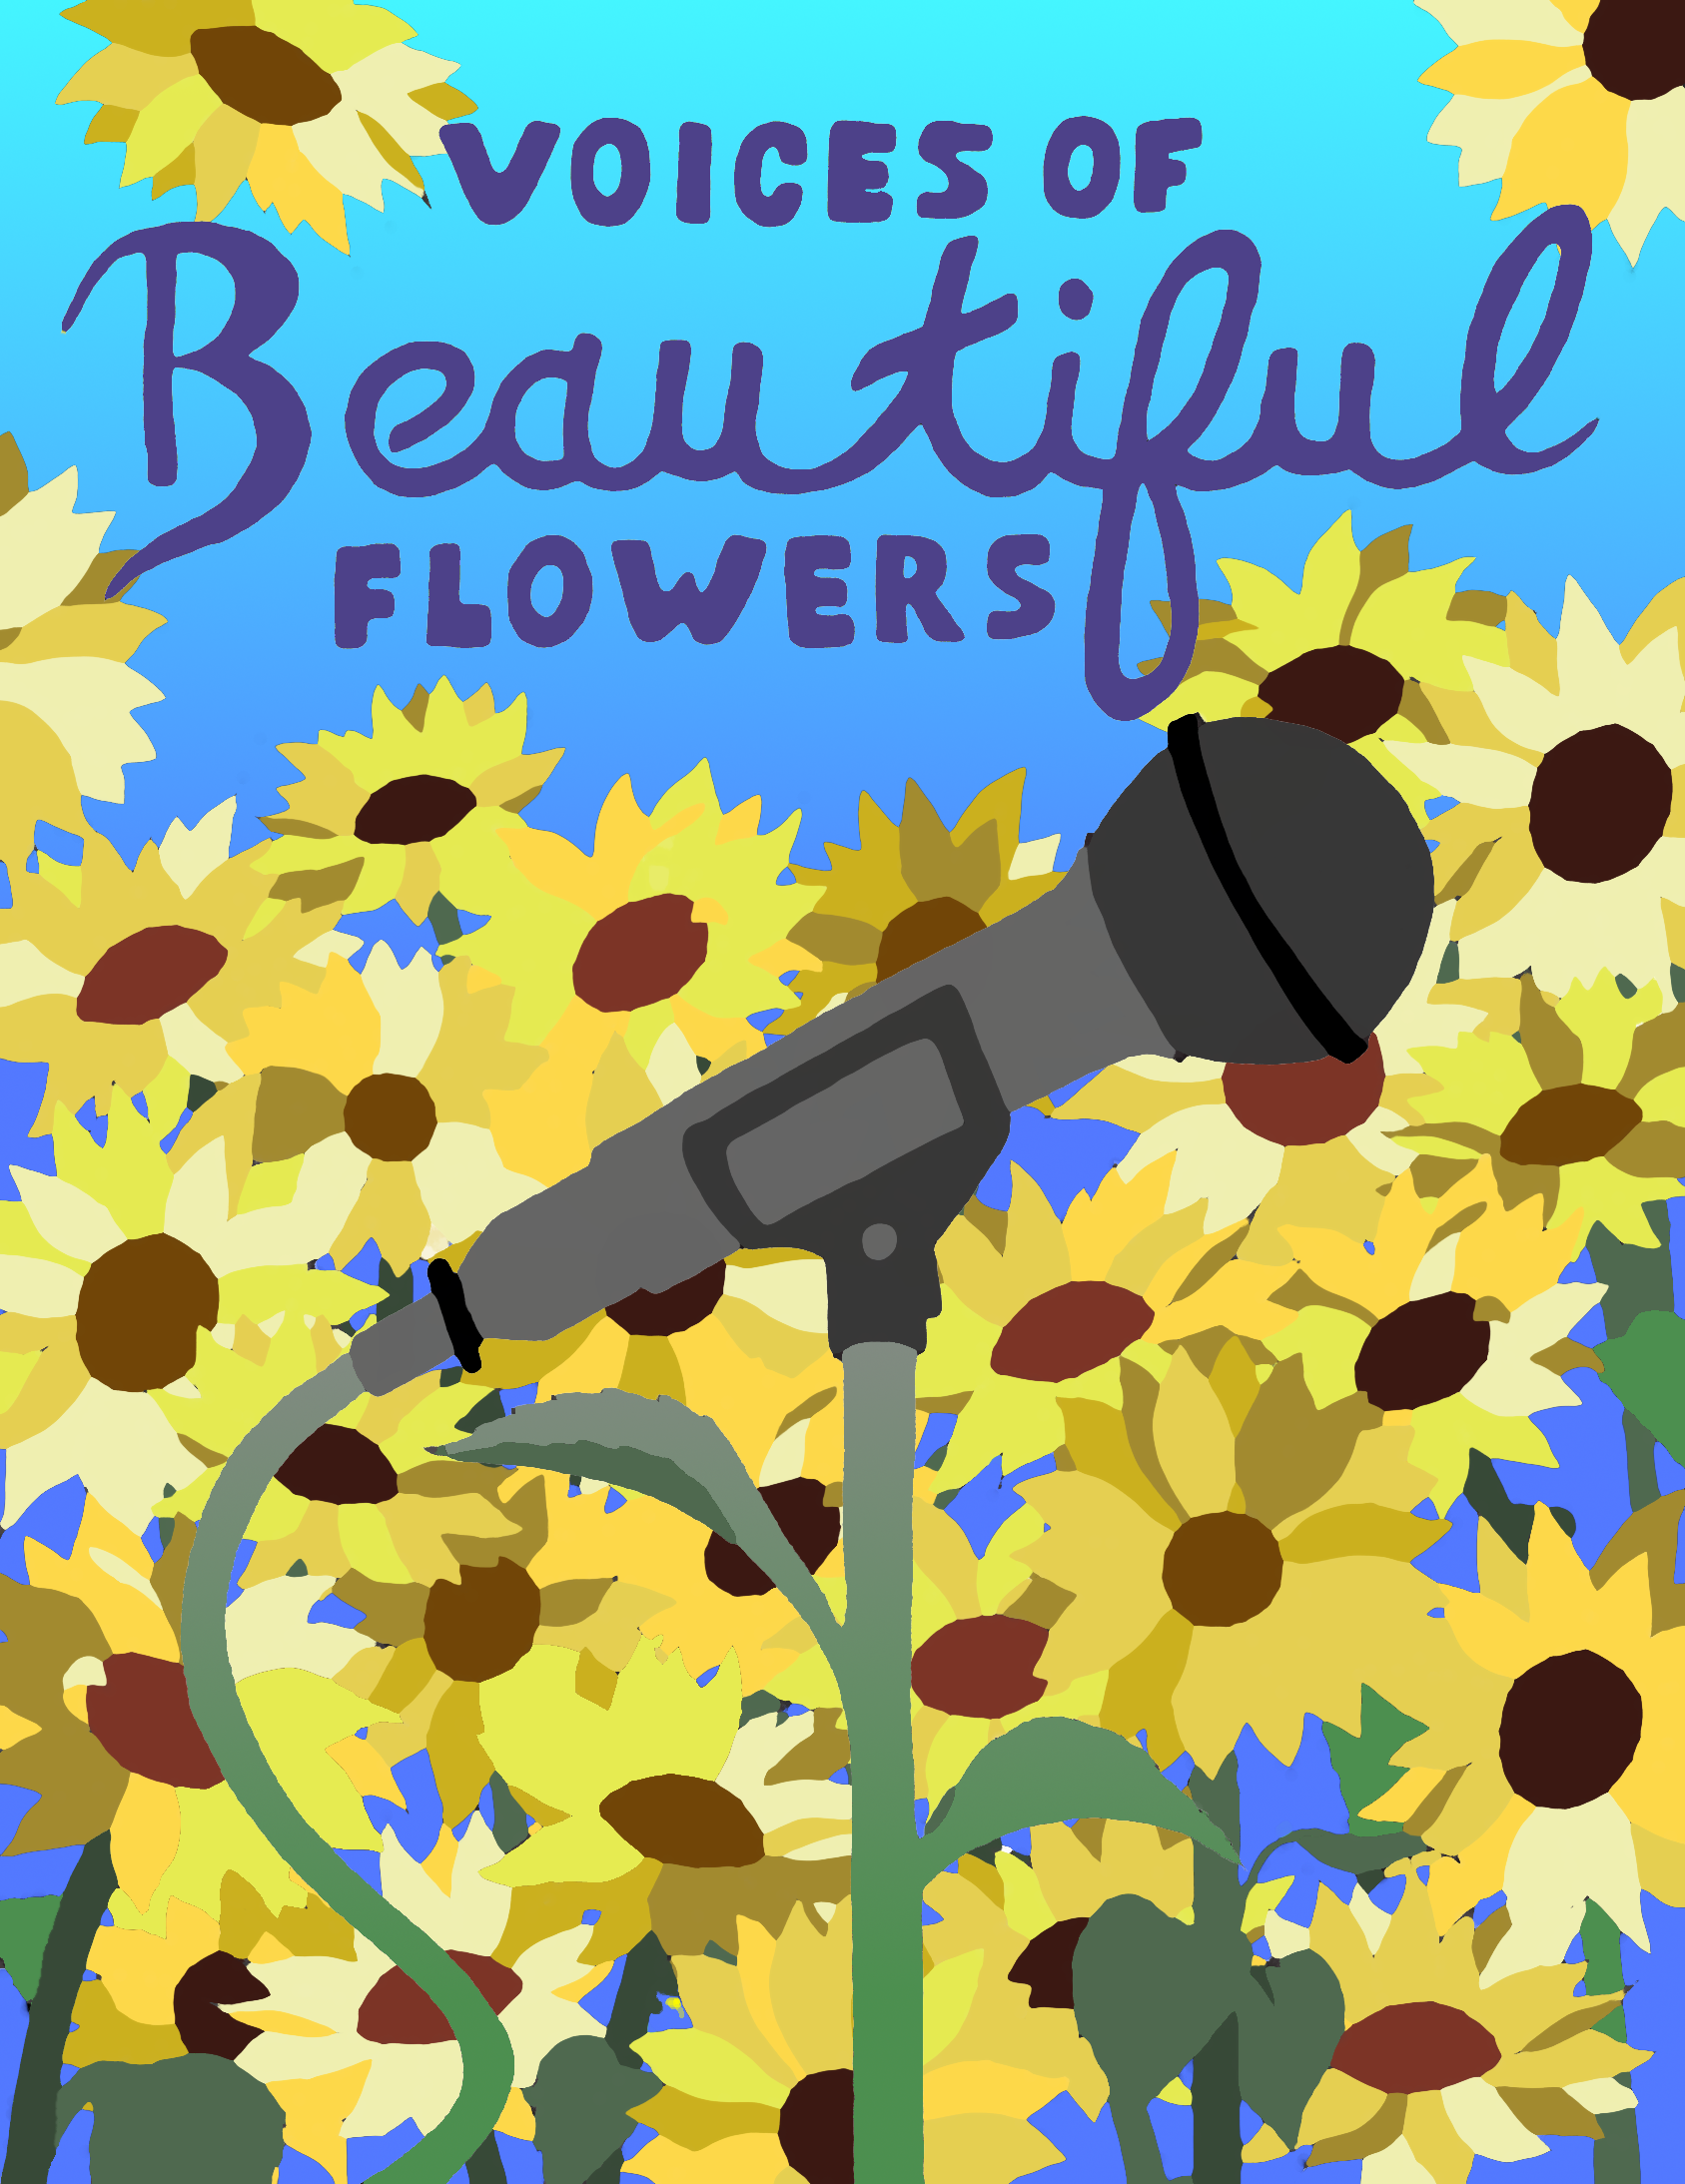 voices-of-beautiful-flowers